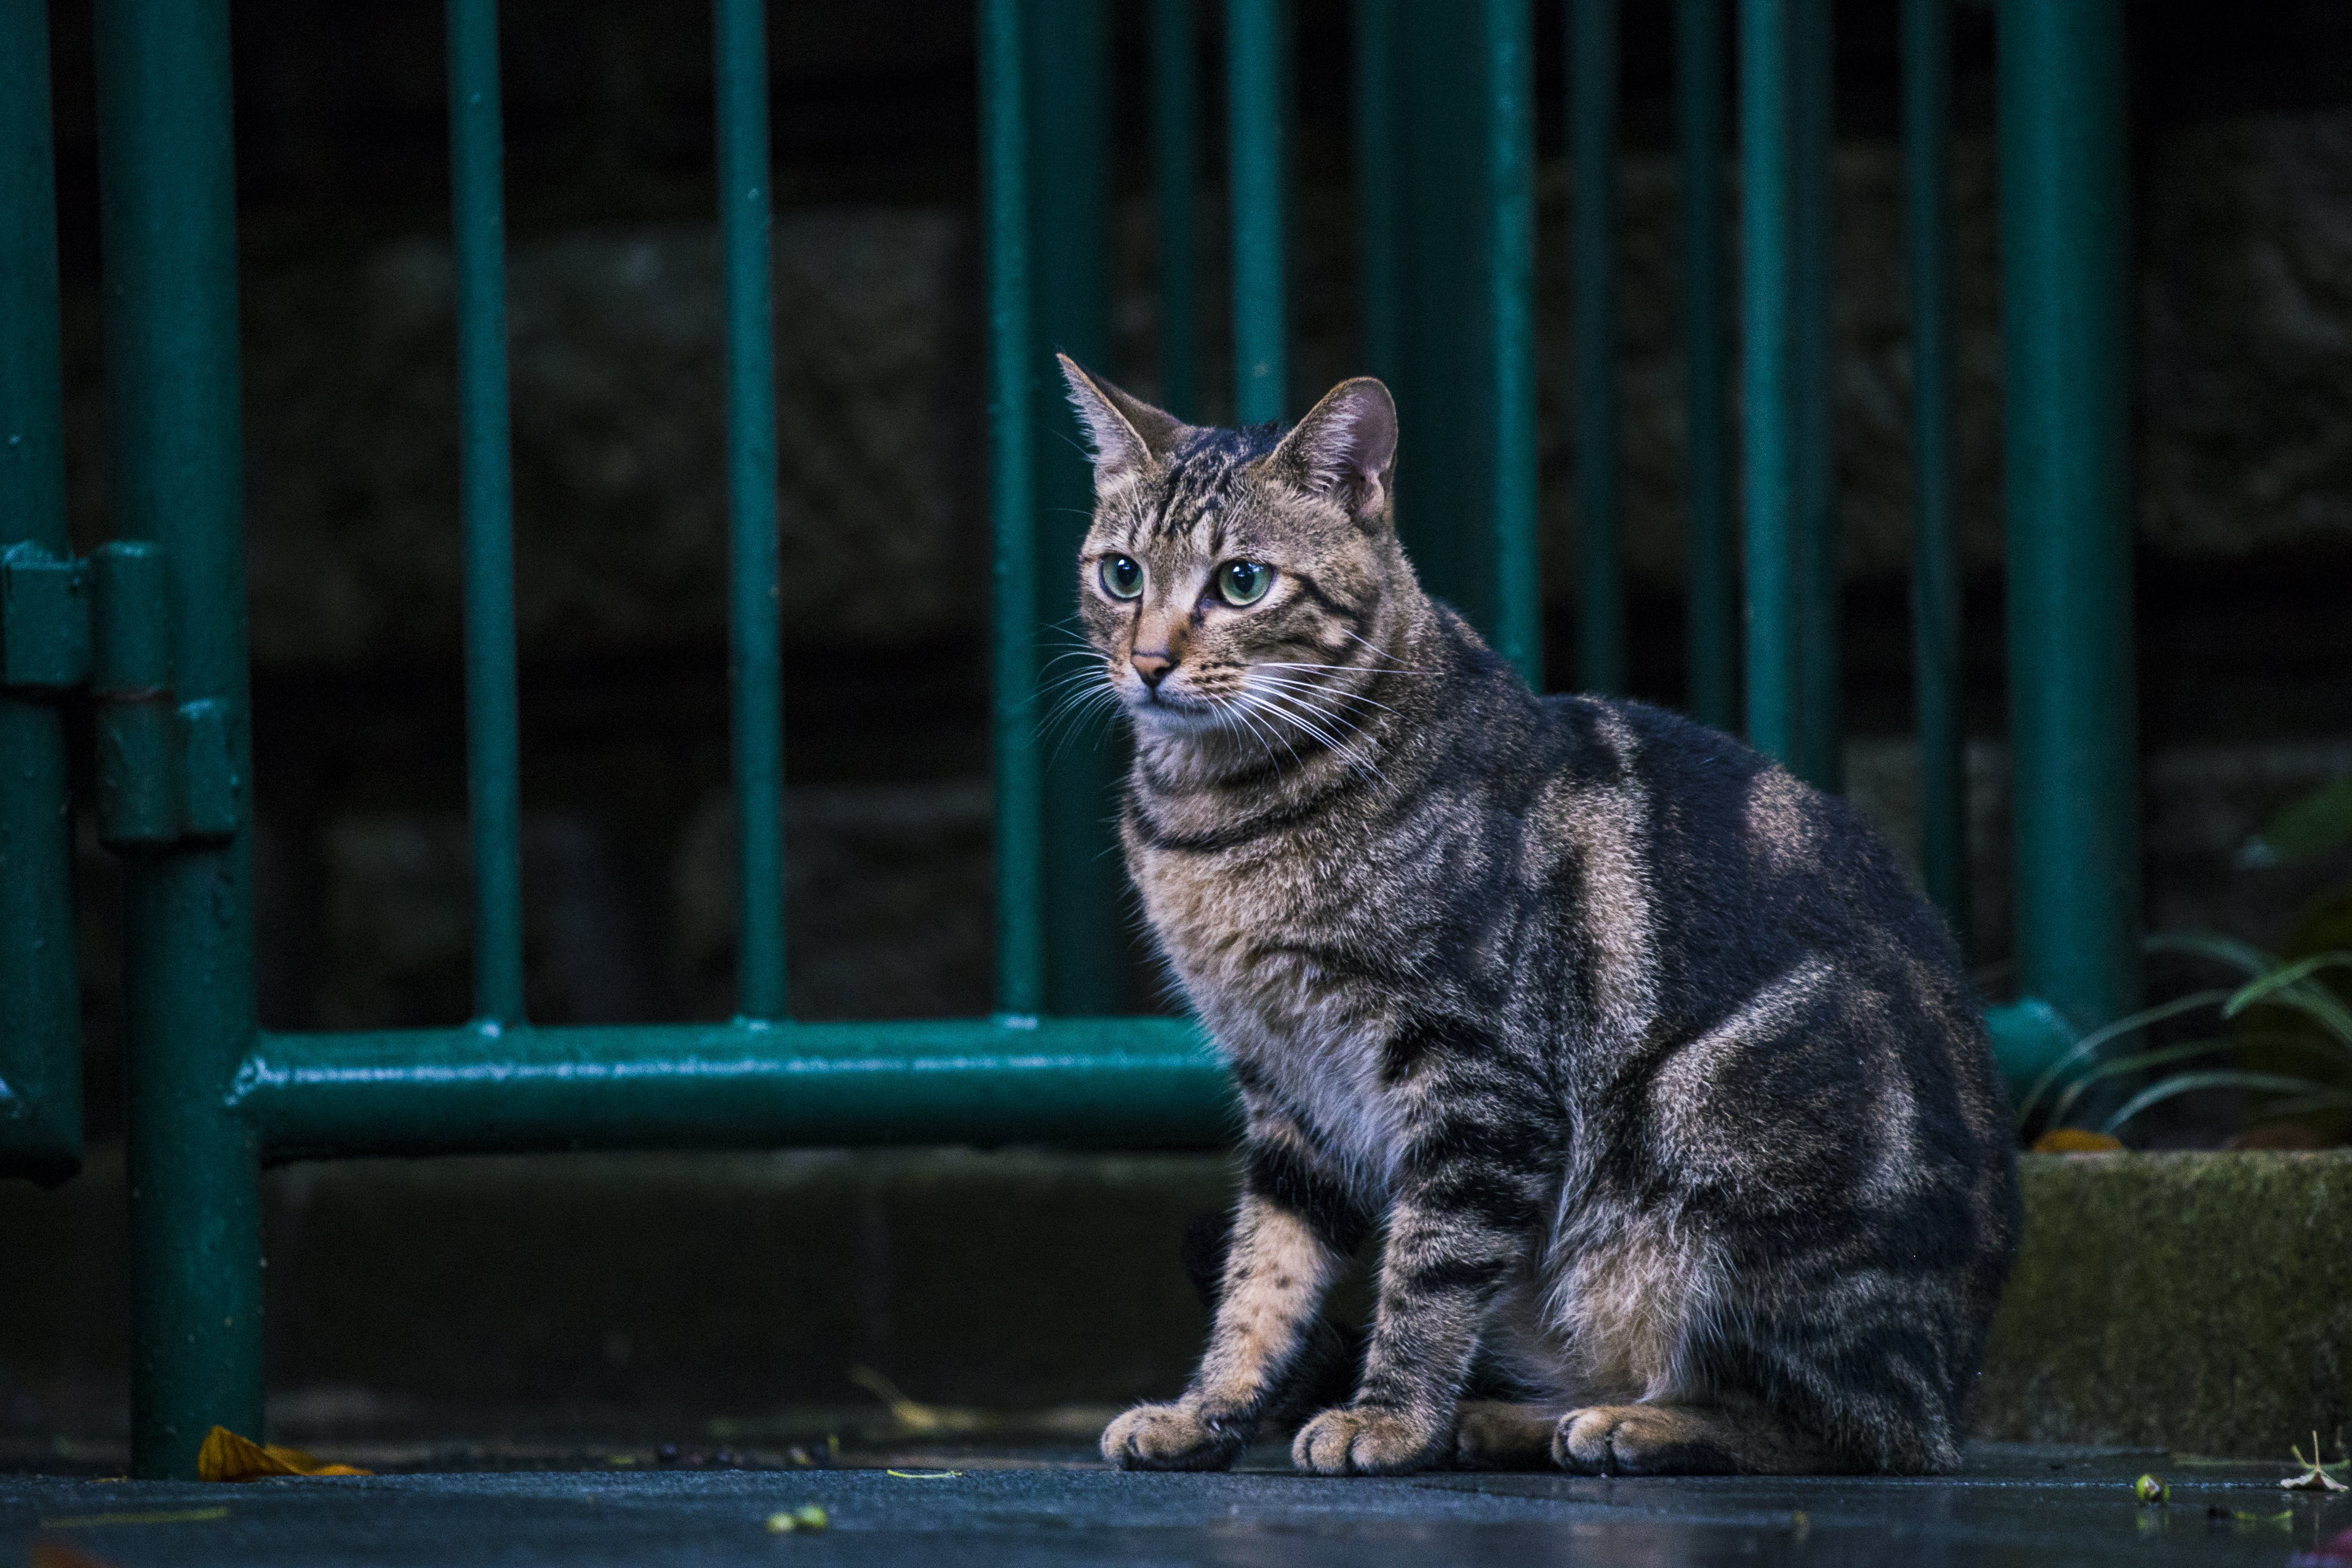 Brown Tabby Cat Sitting Near Steel Gate Outdoors